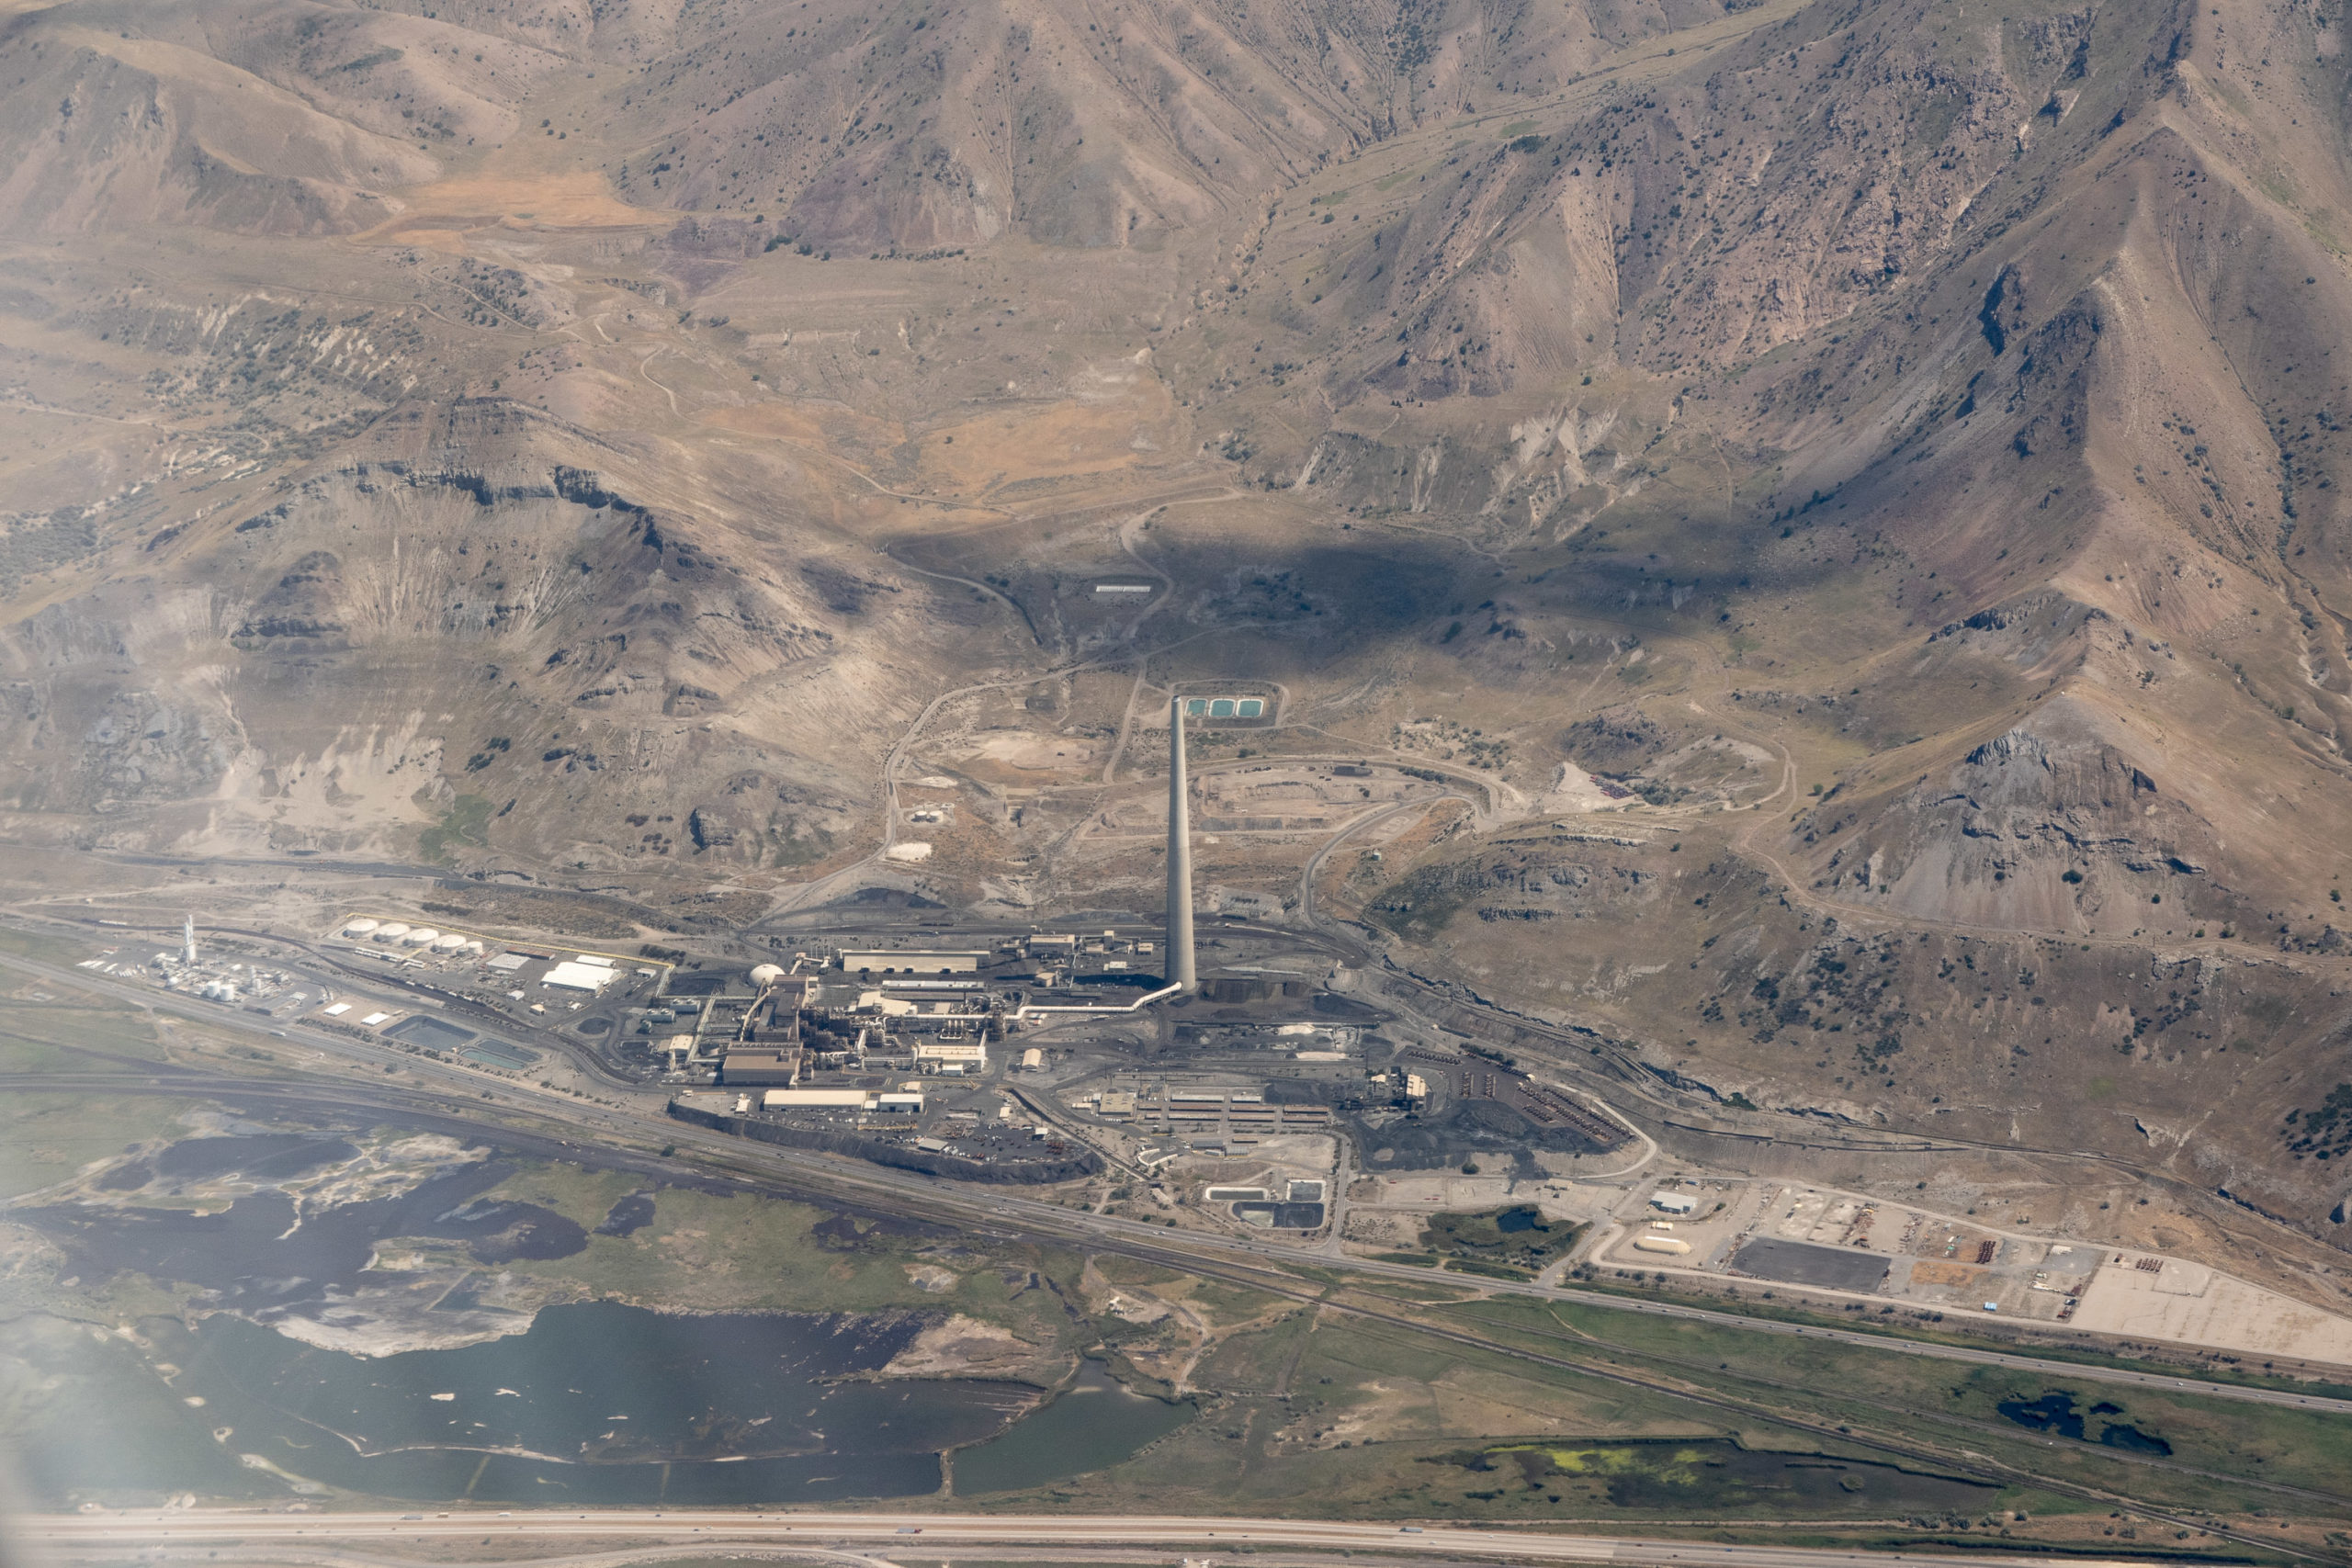 A very tall smokestack at the base of the Oquirrh Mountains